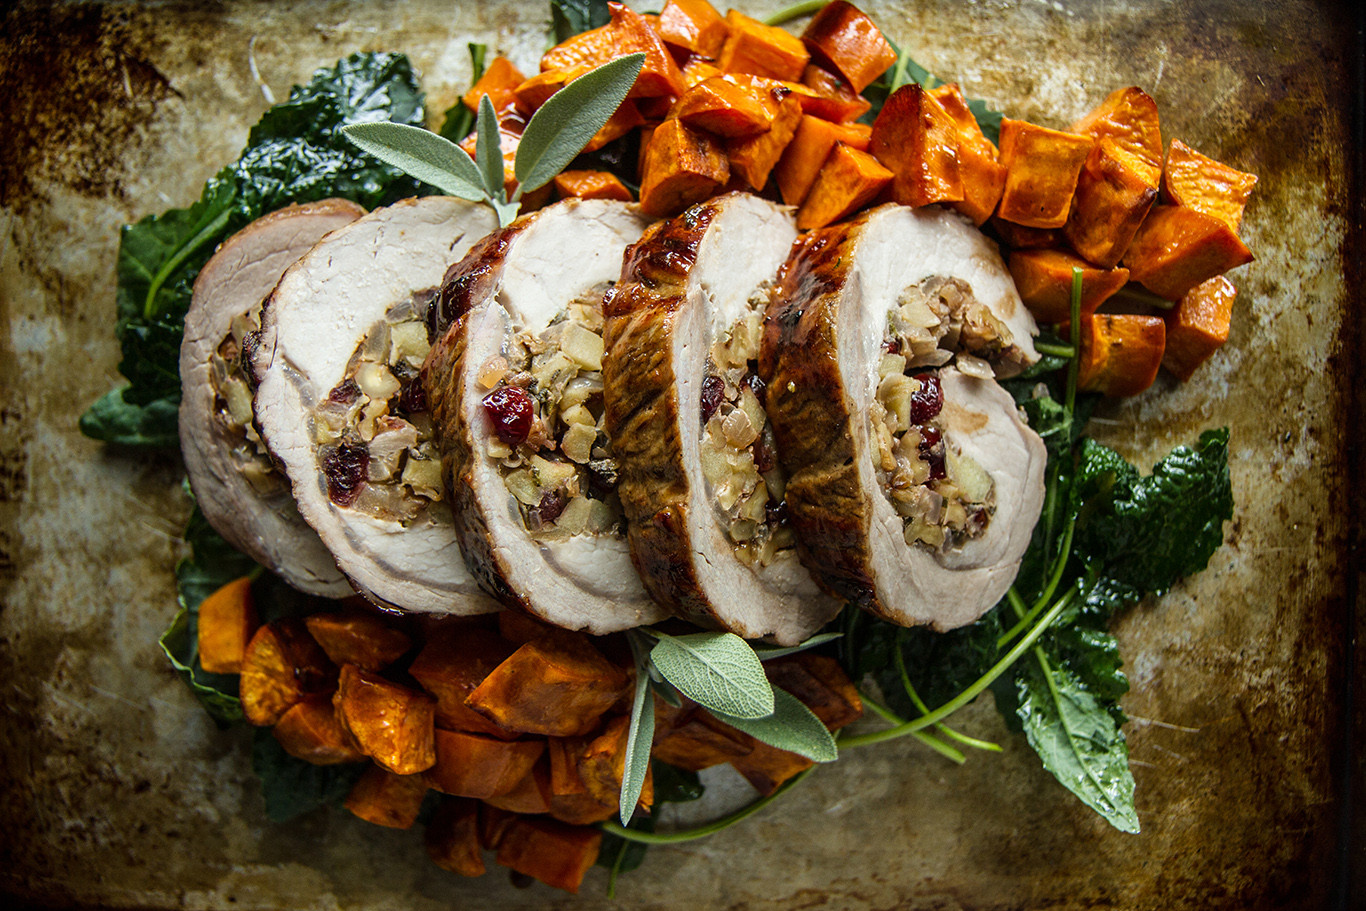 Pork Loin With Apples  Cider Glazed Pork Loin with Apple Walnut stuffing